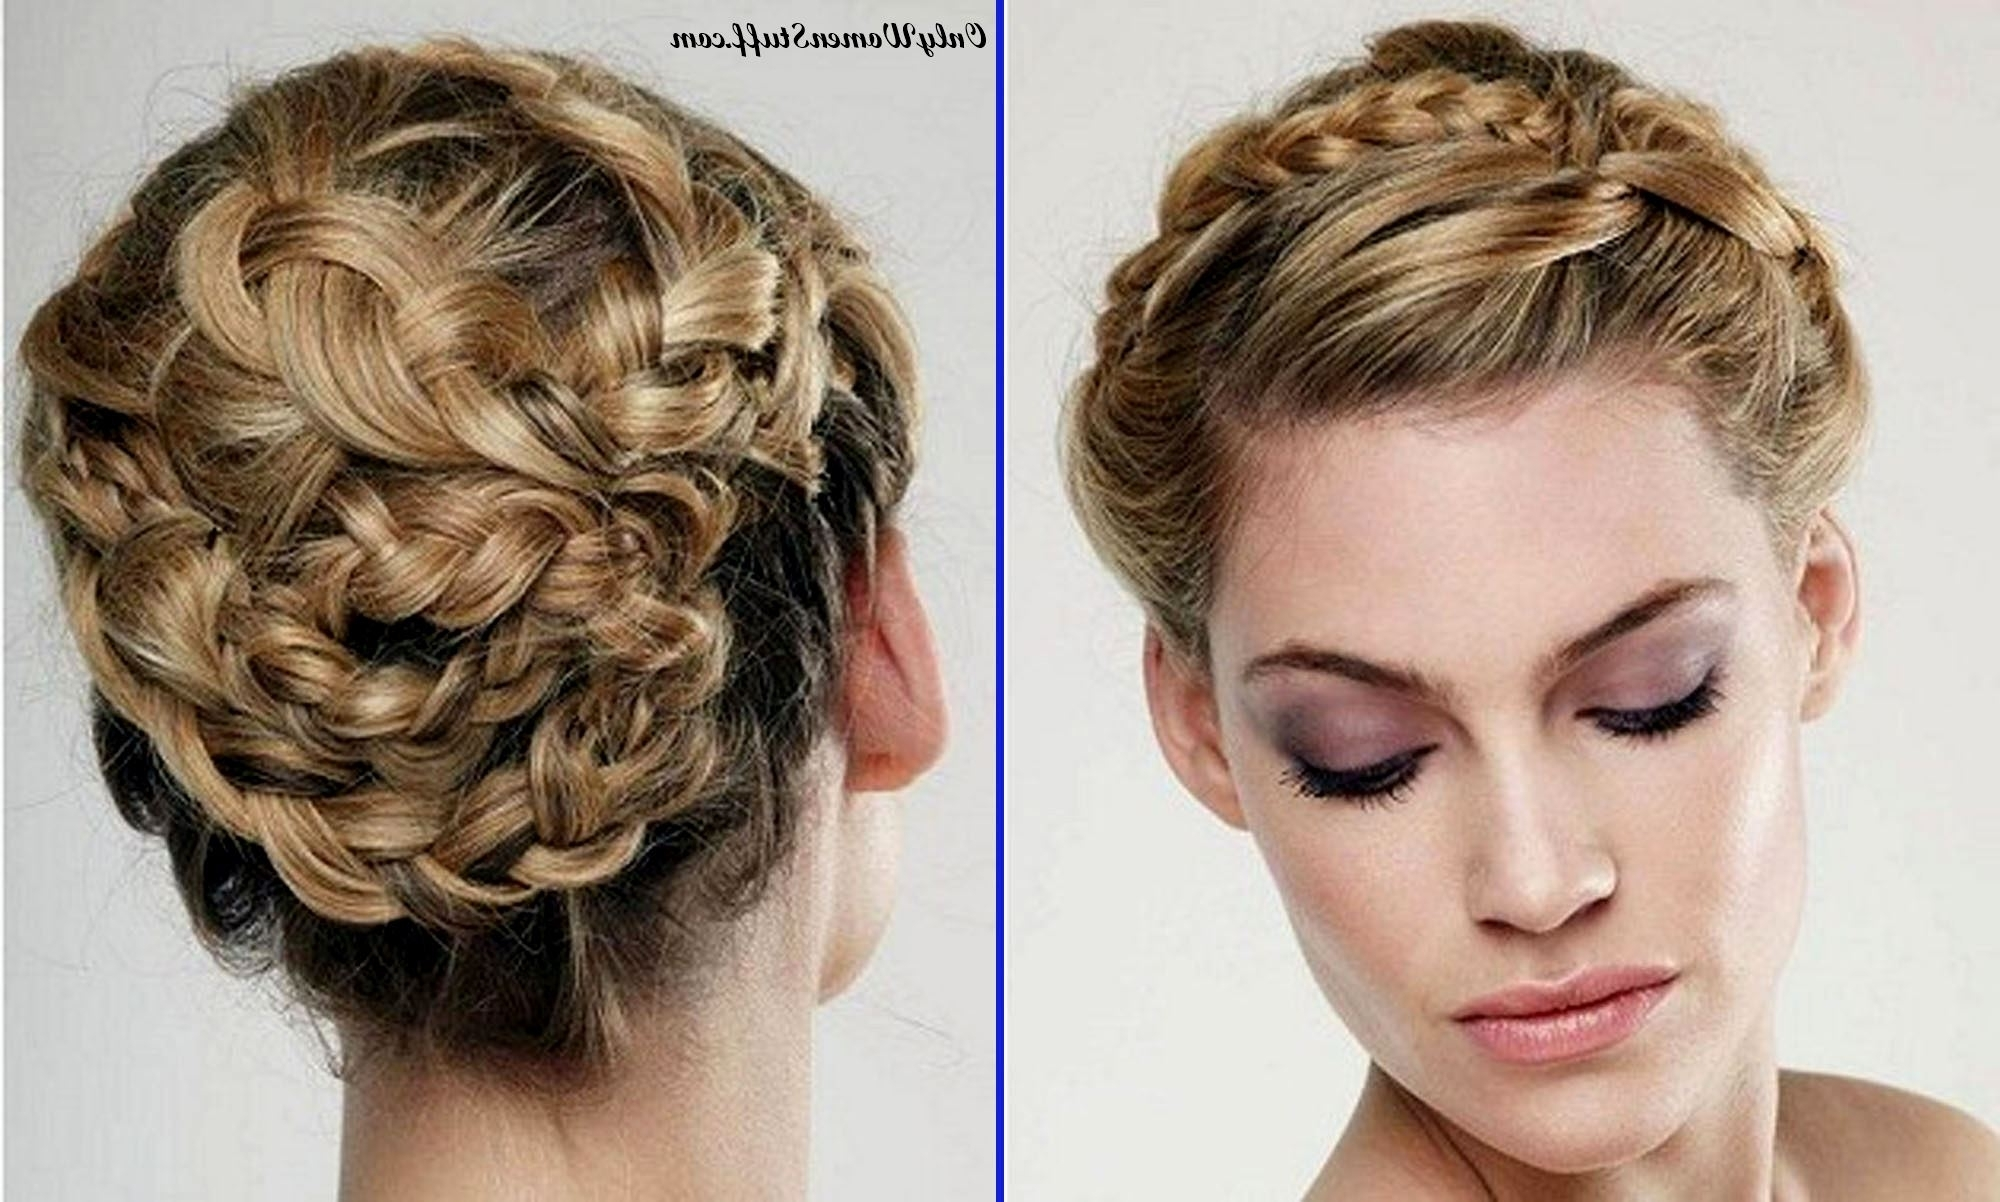 50+ Easy Prom Hairstyles & Updos Ideas (Stepstep) For Fancy Hairstyles Updo Hairstyles (View 6 of 25)